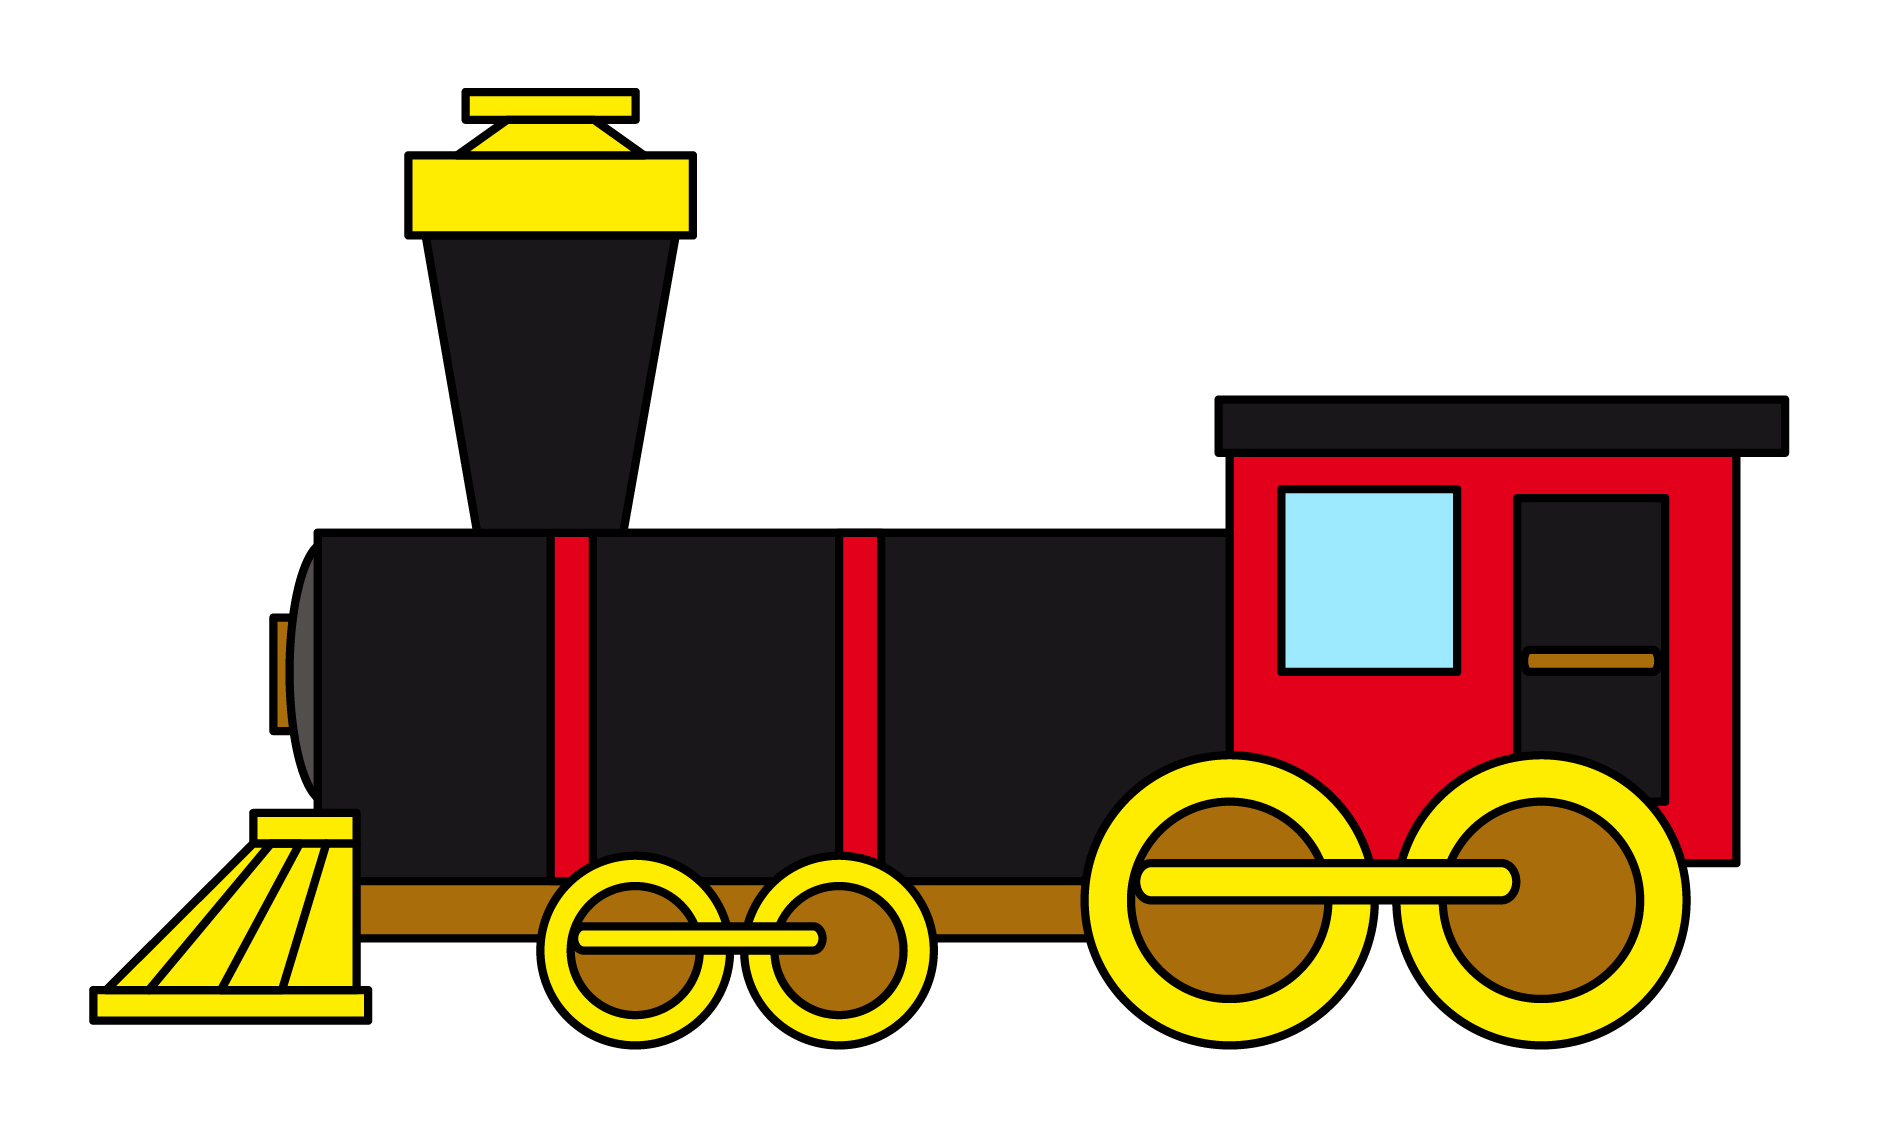 Train free to use clip art 2